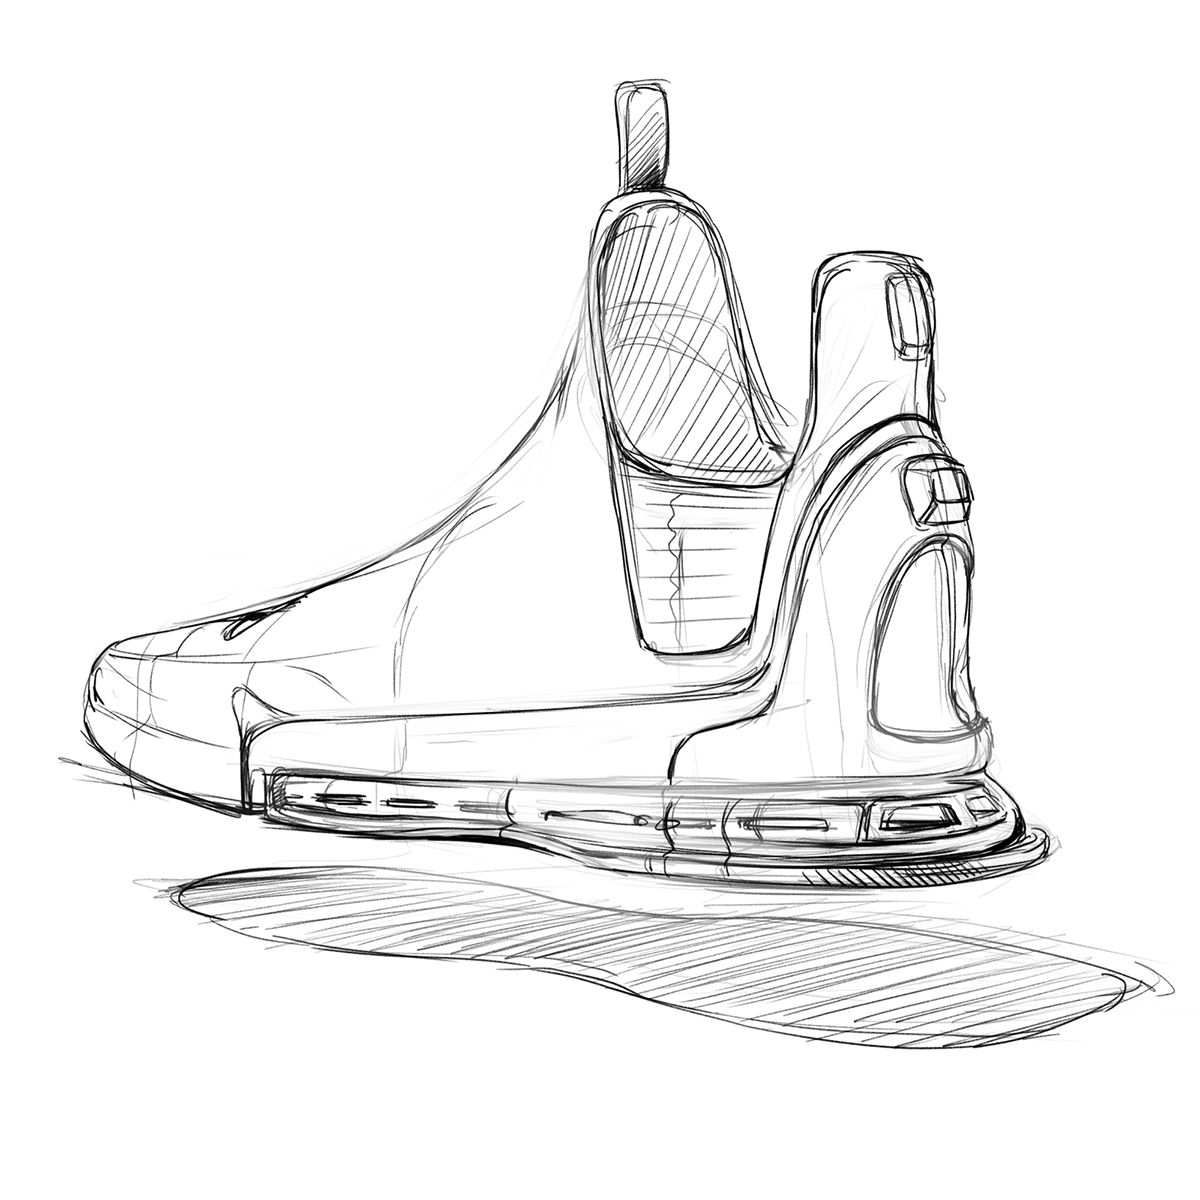 clip art download Drawing sneakers sketch. Some doodles on behance